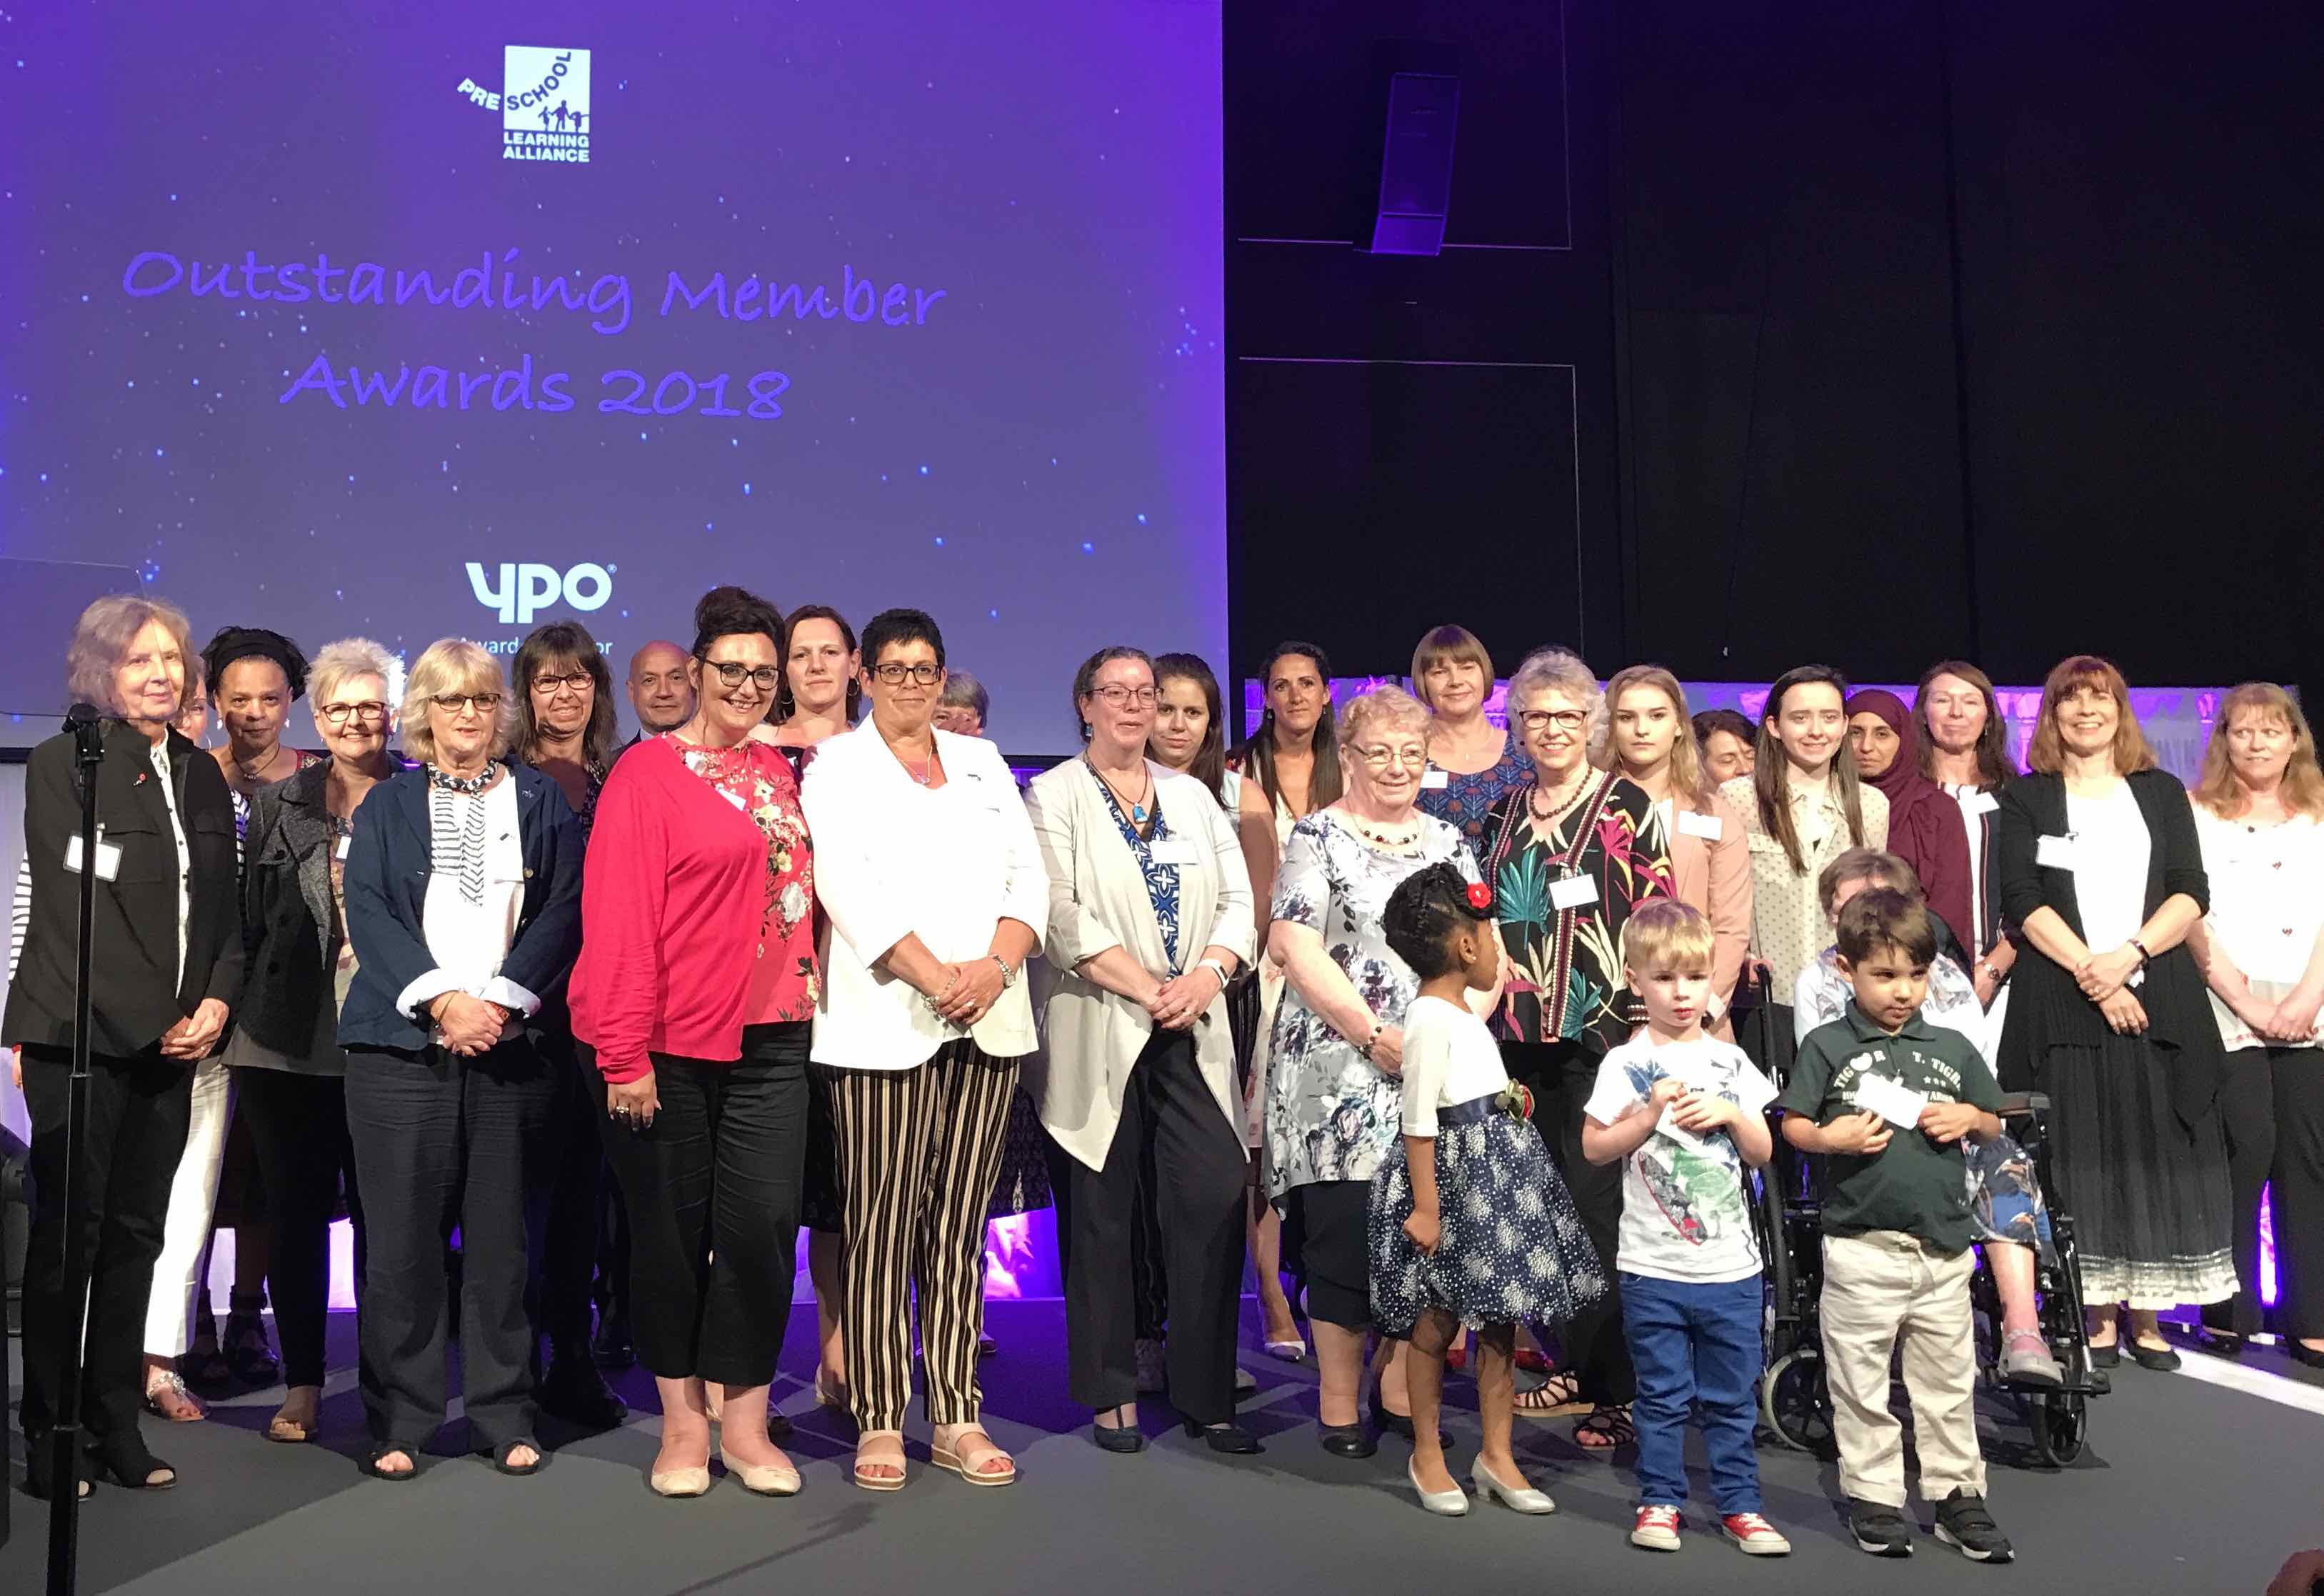 Outstanding Member Awards 2018